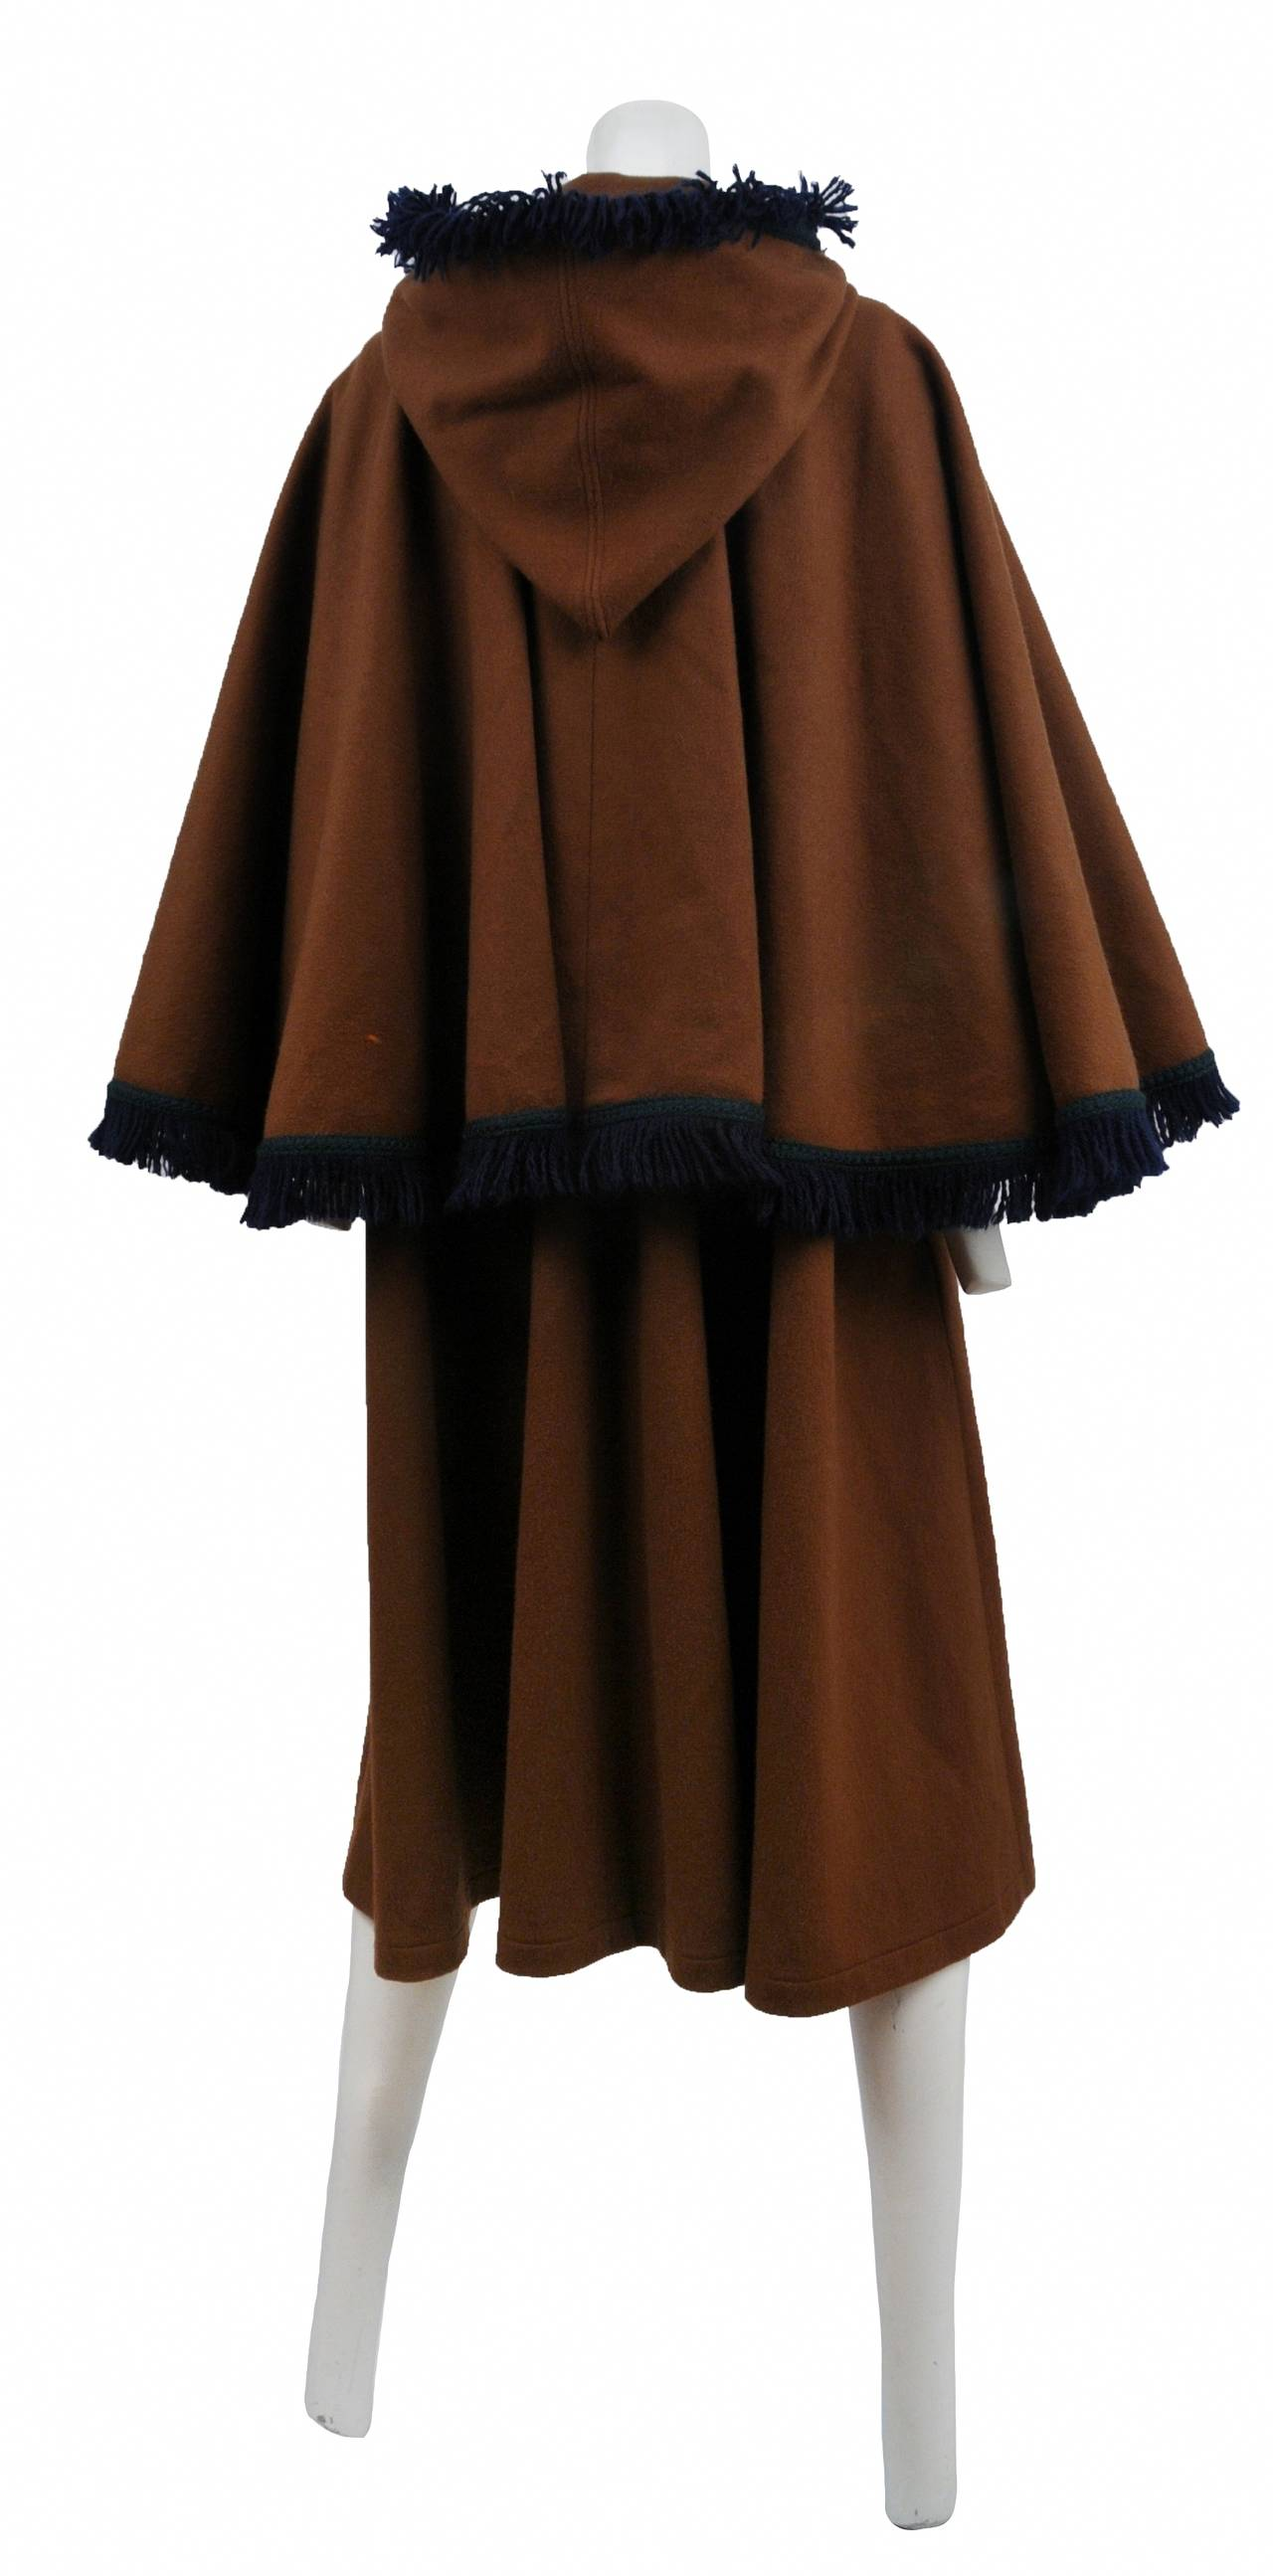 Yves Saint Laurent Brown Wool Cape Coat 4